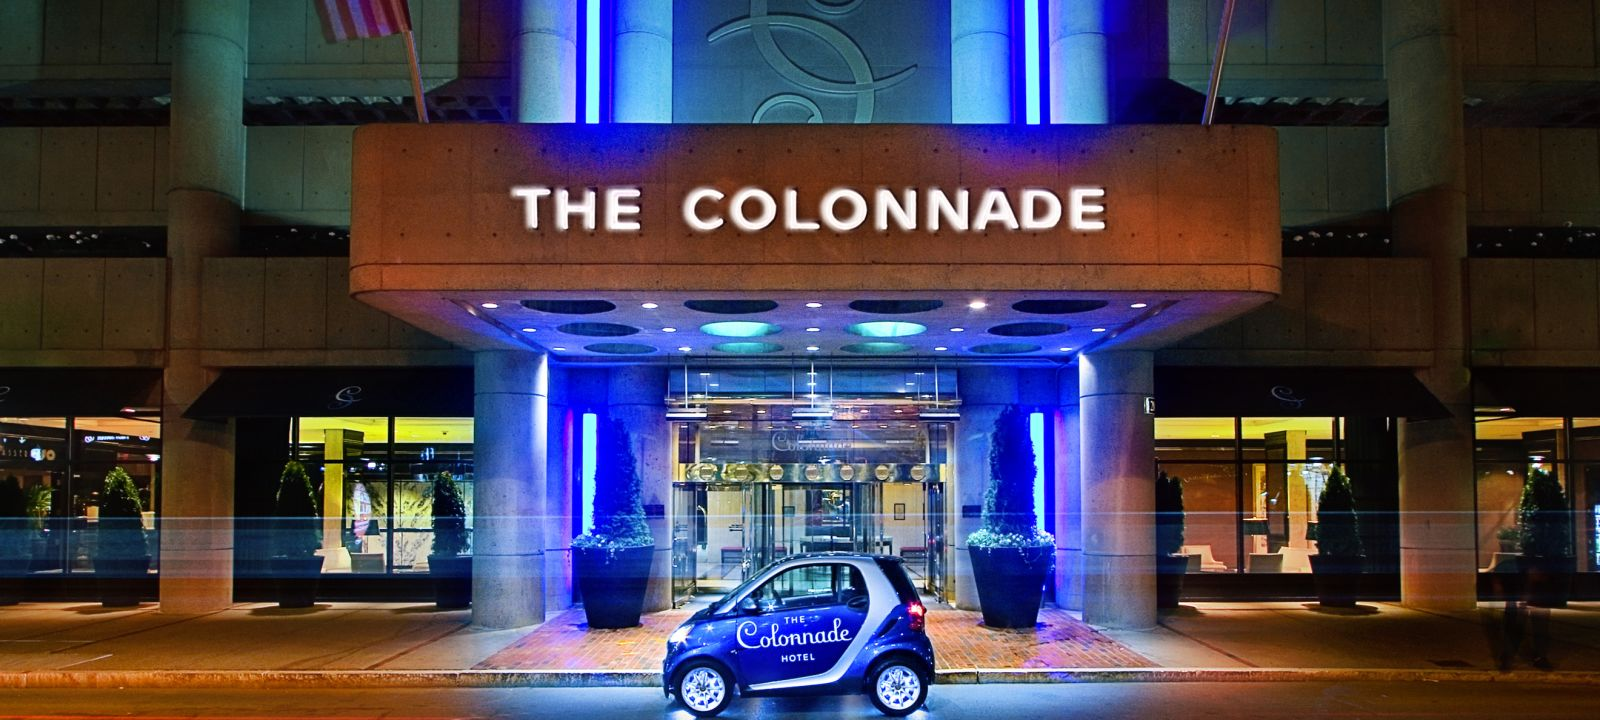 The Colonnade Hotel Entrance with smart car in front at night